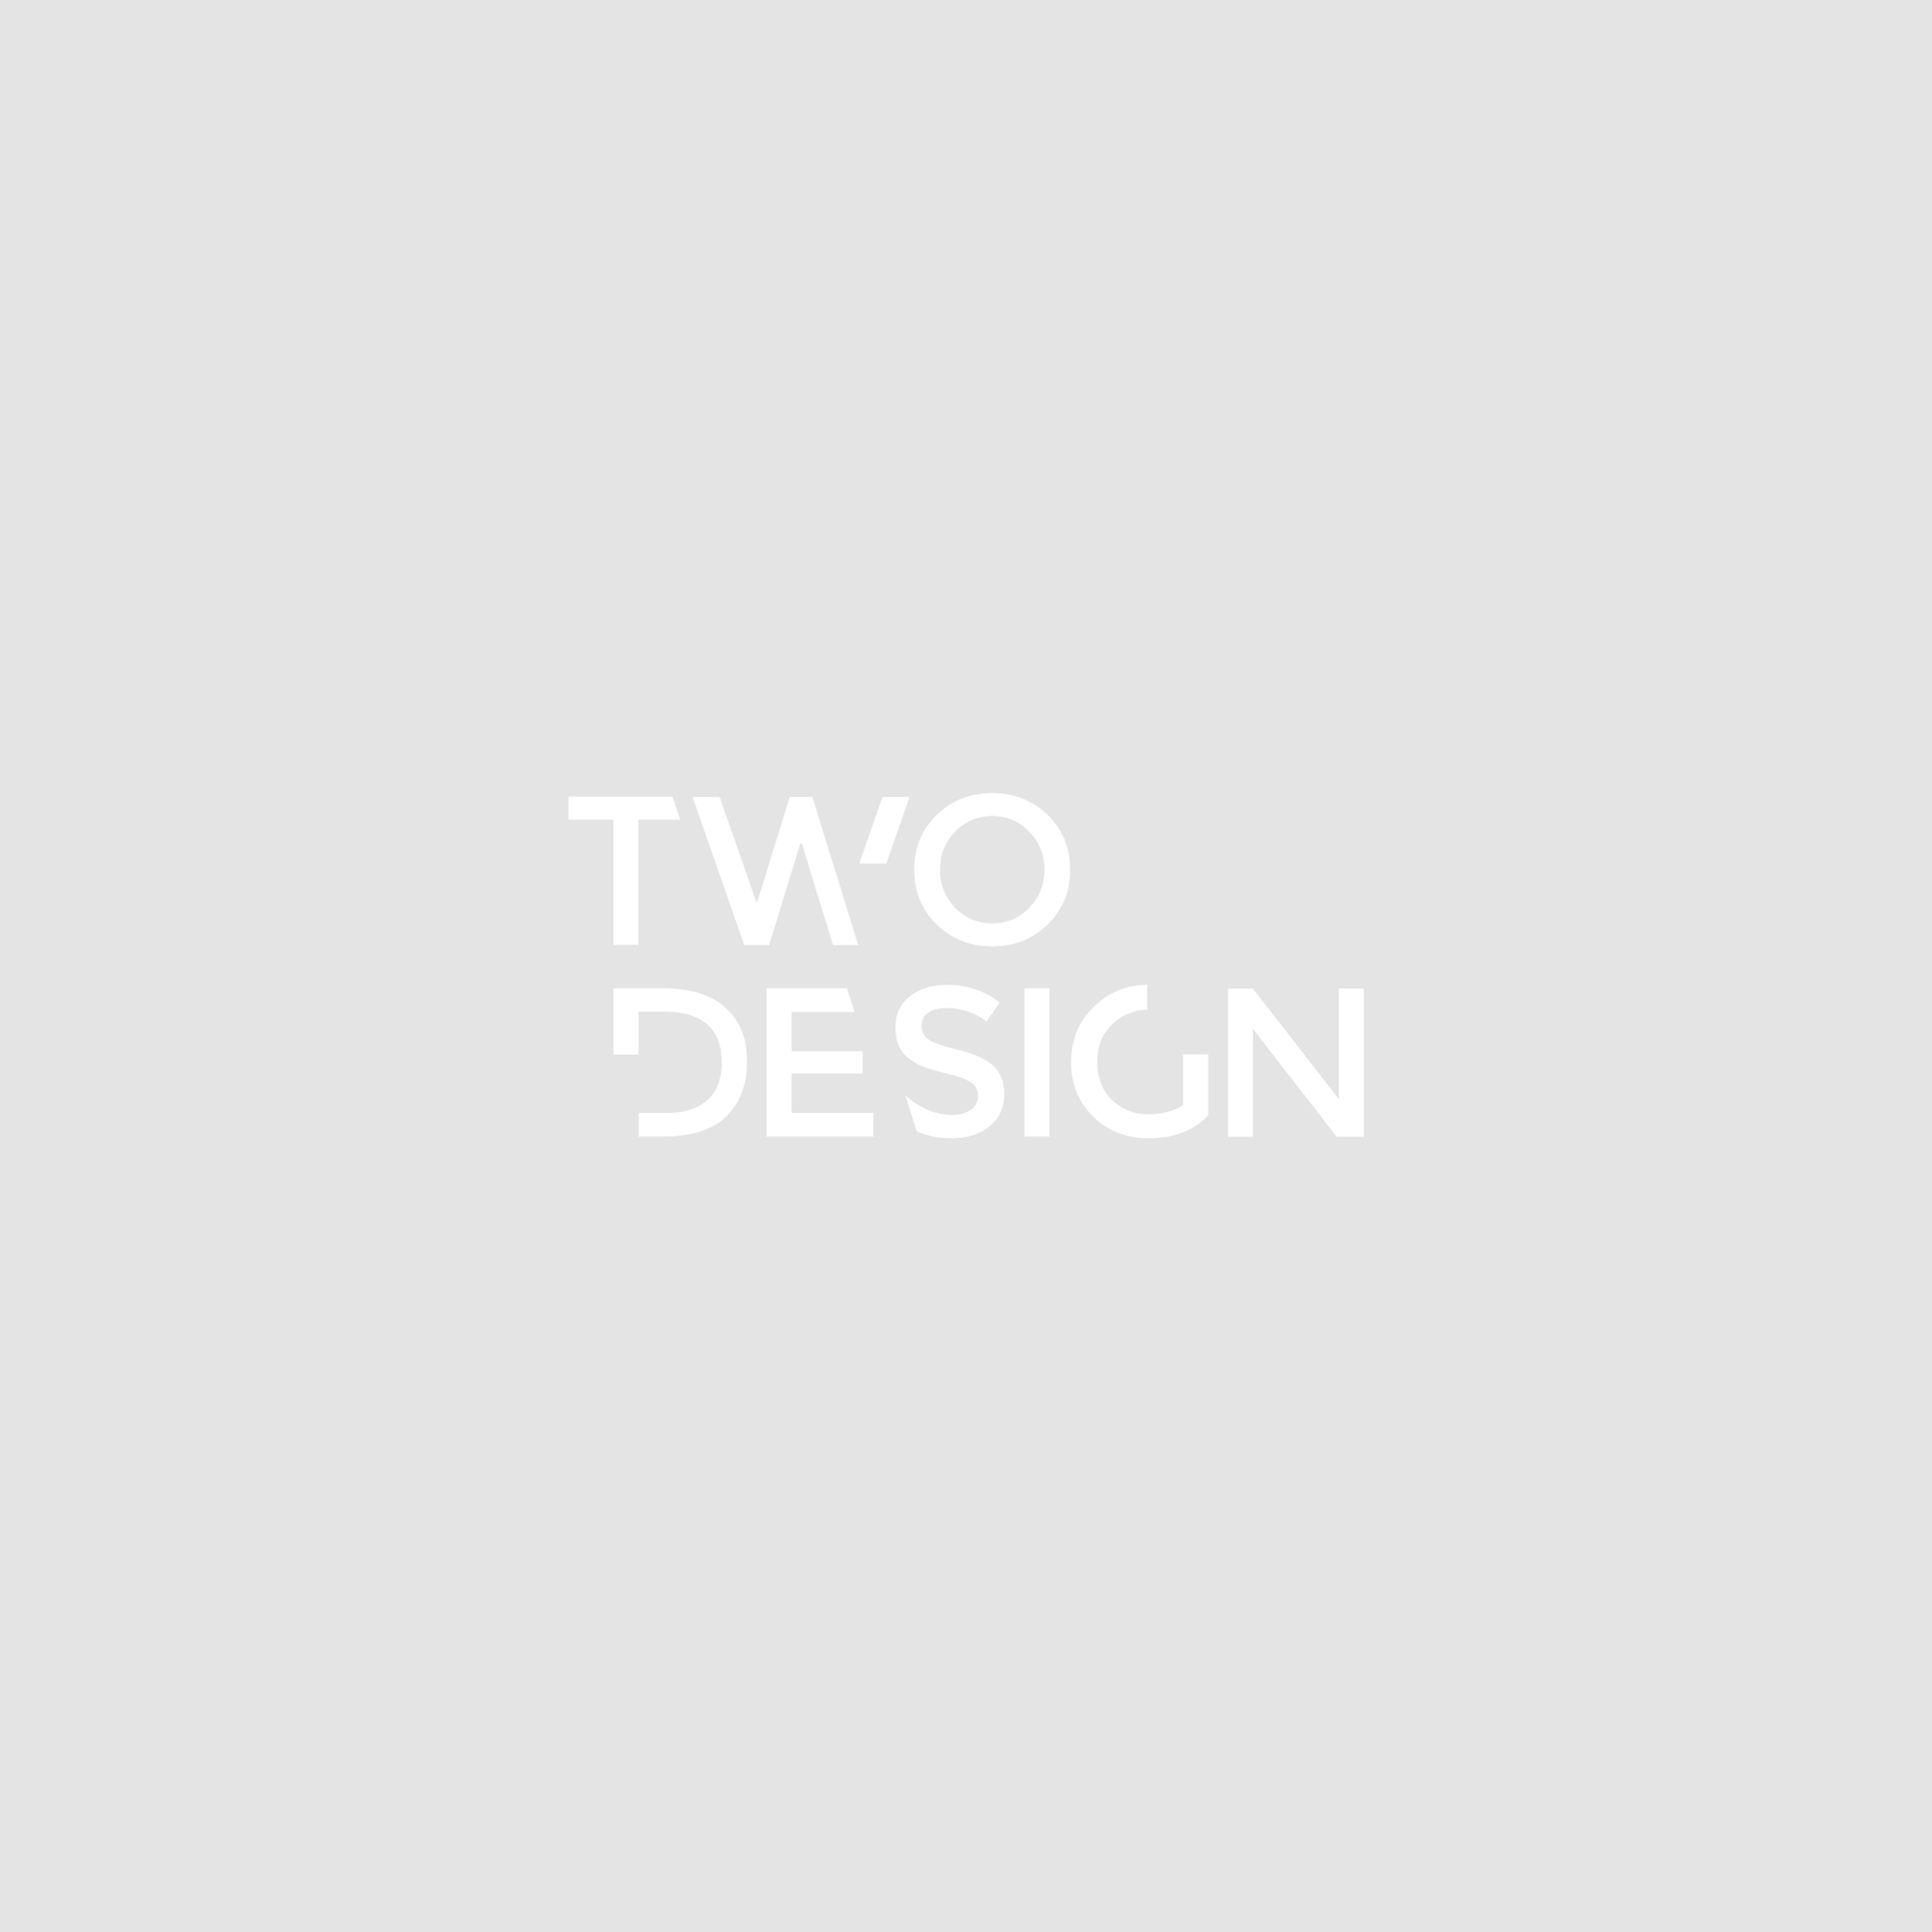 Two_design_placeholder 8.jpg